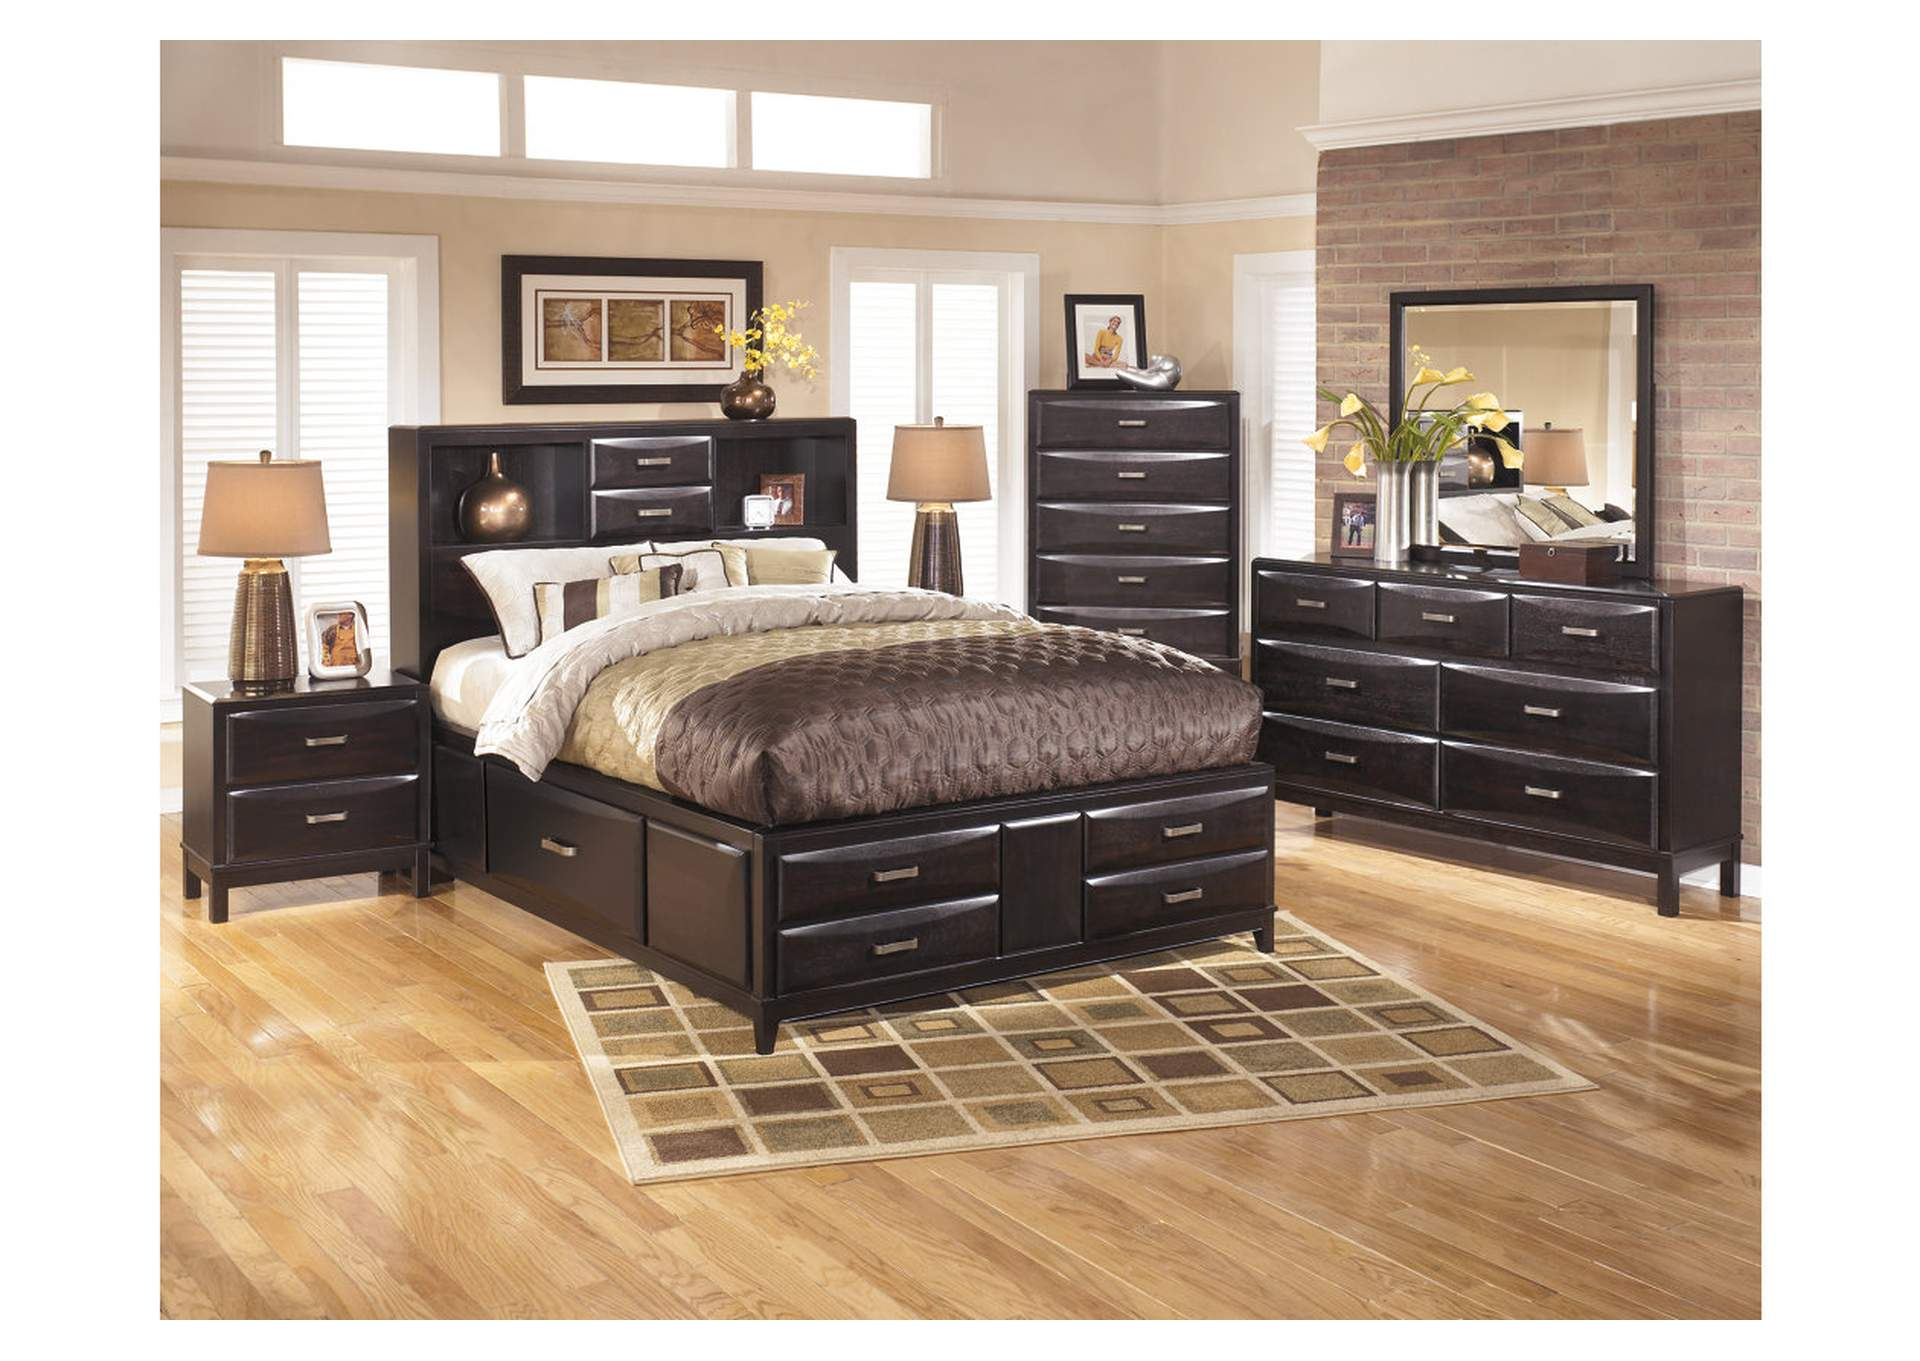 Kira Black California King Storage Bed w/Dresser, Mirror, Drawer Chest & Nightstand,Ashley